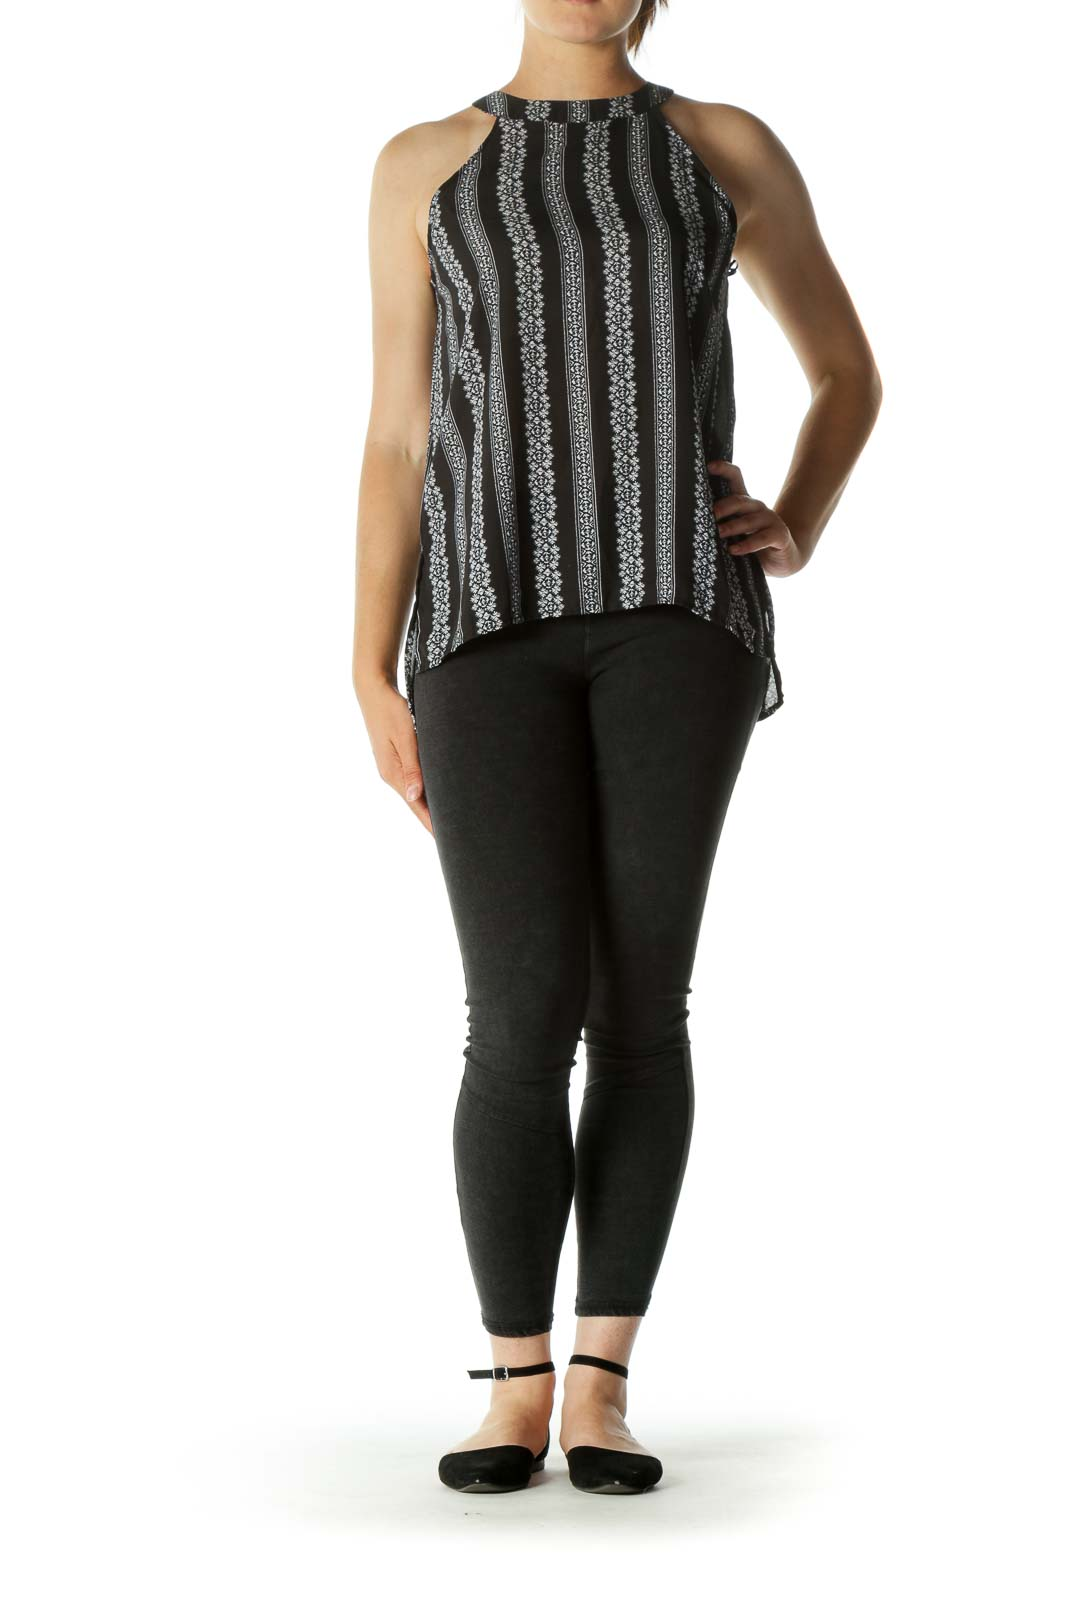 Black&White Patterned Tank Top